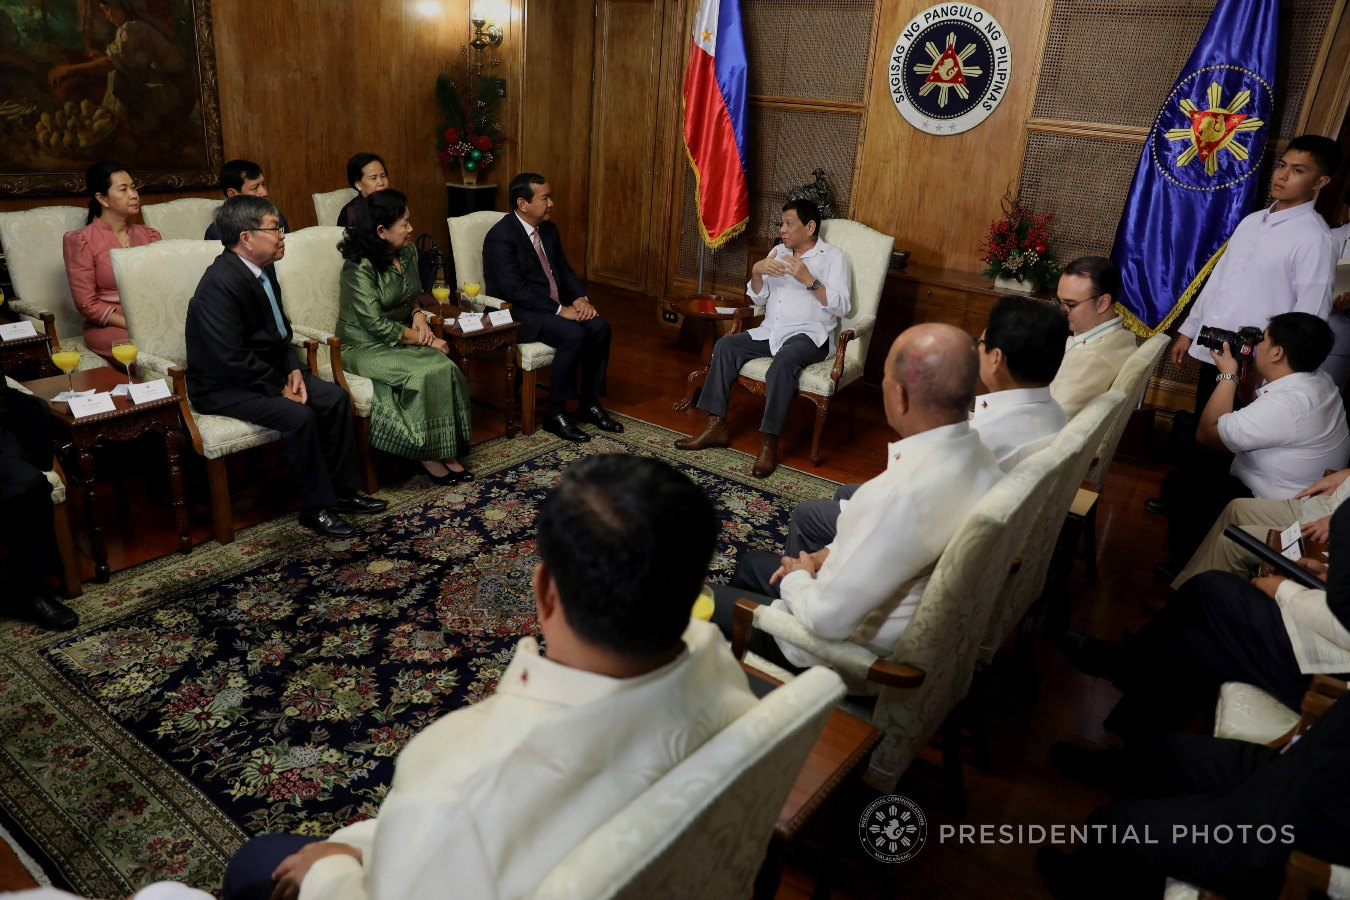 President Rodrigo Roa Duterte discusses matters with Kingdom of Cambodia Minister of Foreign Affairs and International Cooperation Prak Sokhon who paid a courtesy call on the President in Malacañan Palace